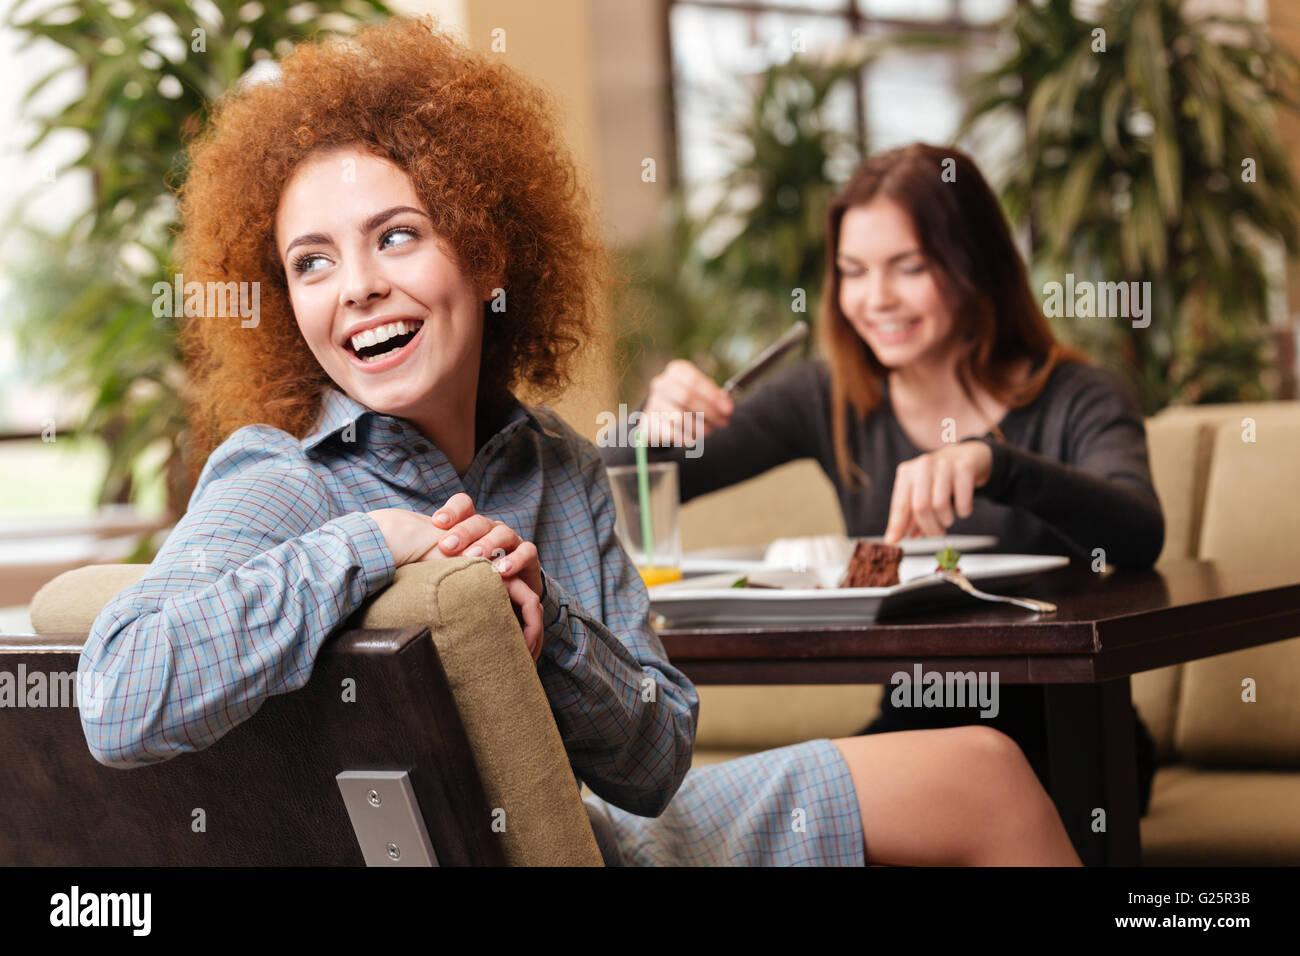 Two cheerful beautiful young women sitting in cafe and laughing together - Stock Image